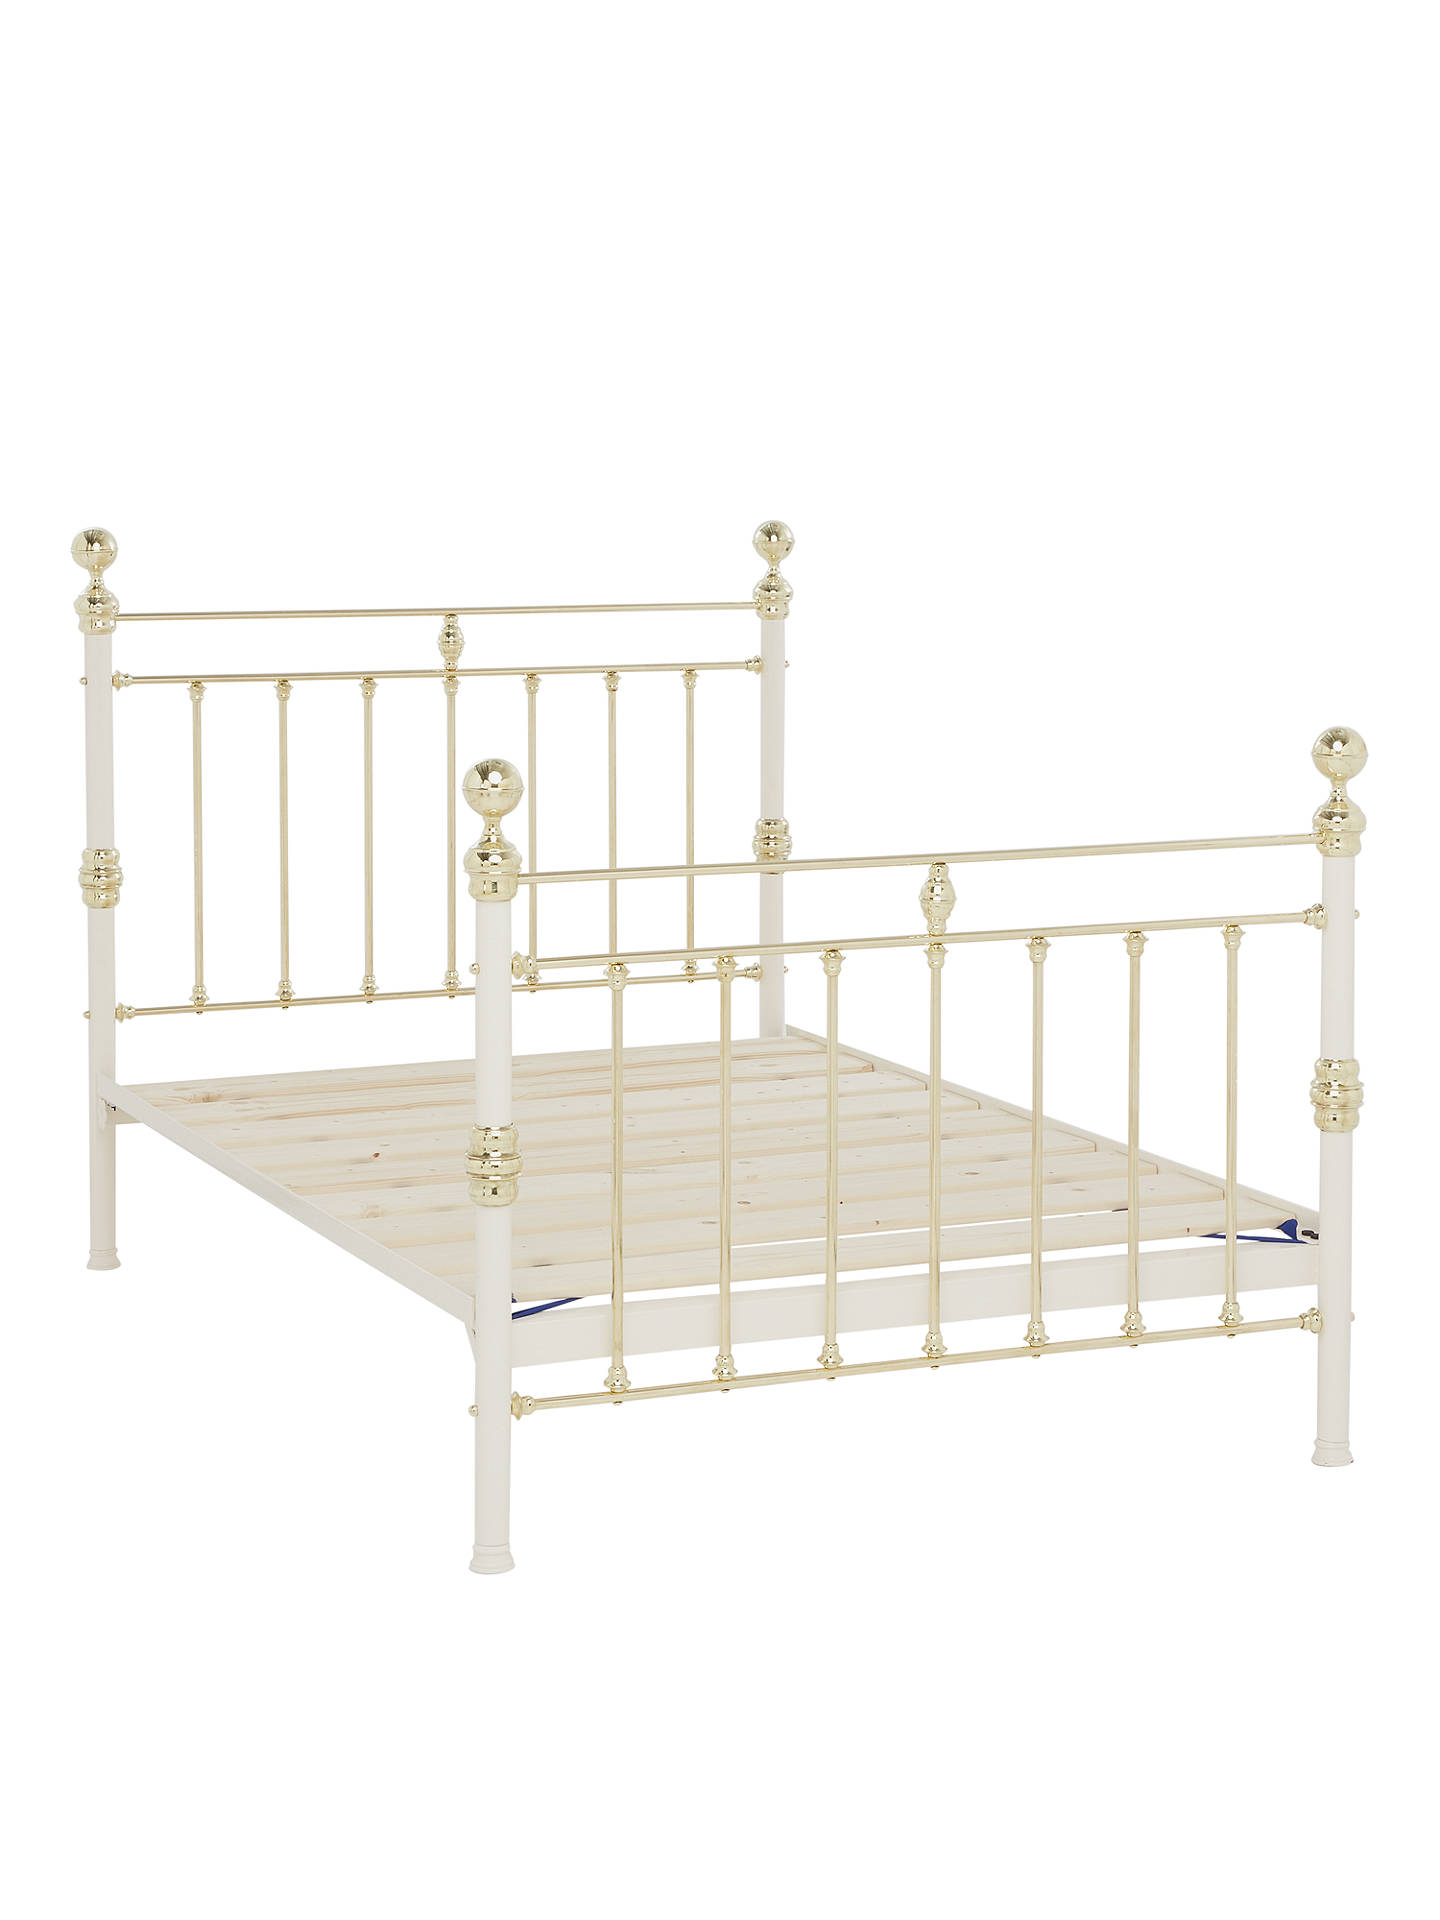 Wrought Iron And Brass Bed Co. George Bed Frame, Double, Ivory at ...